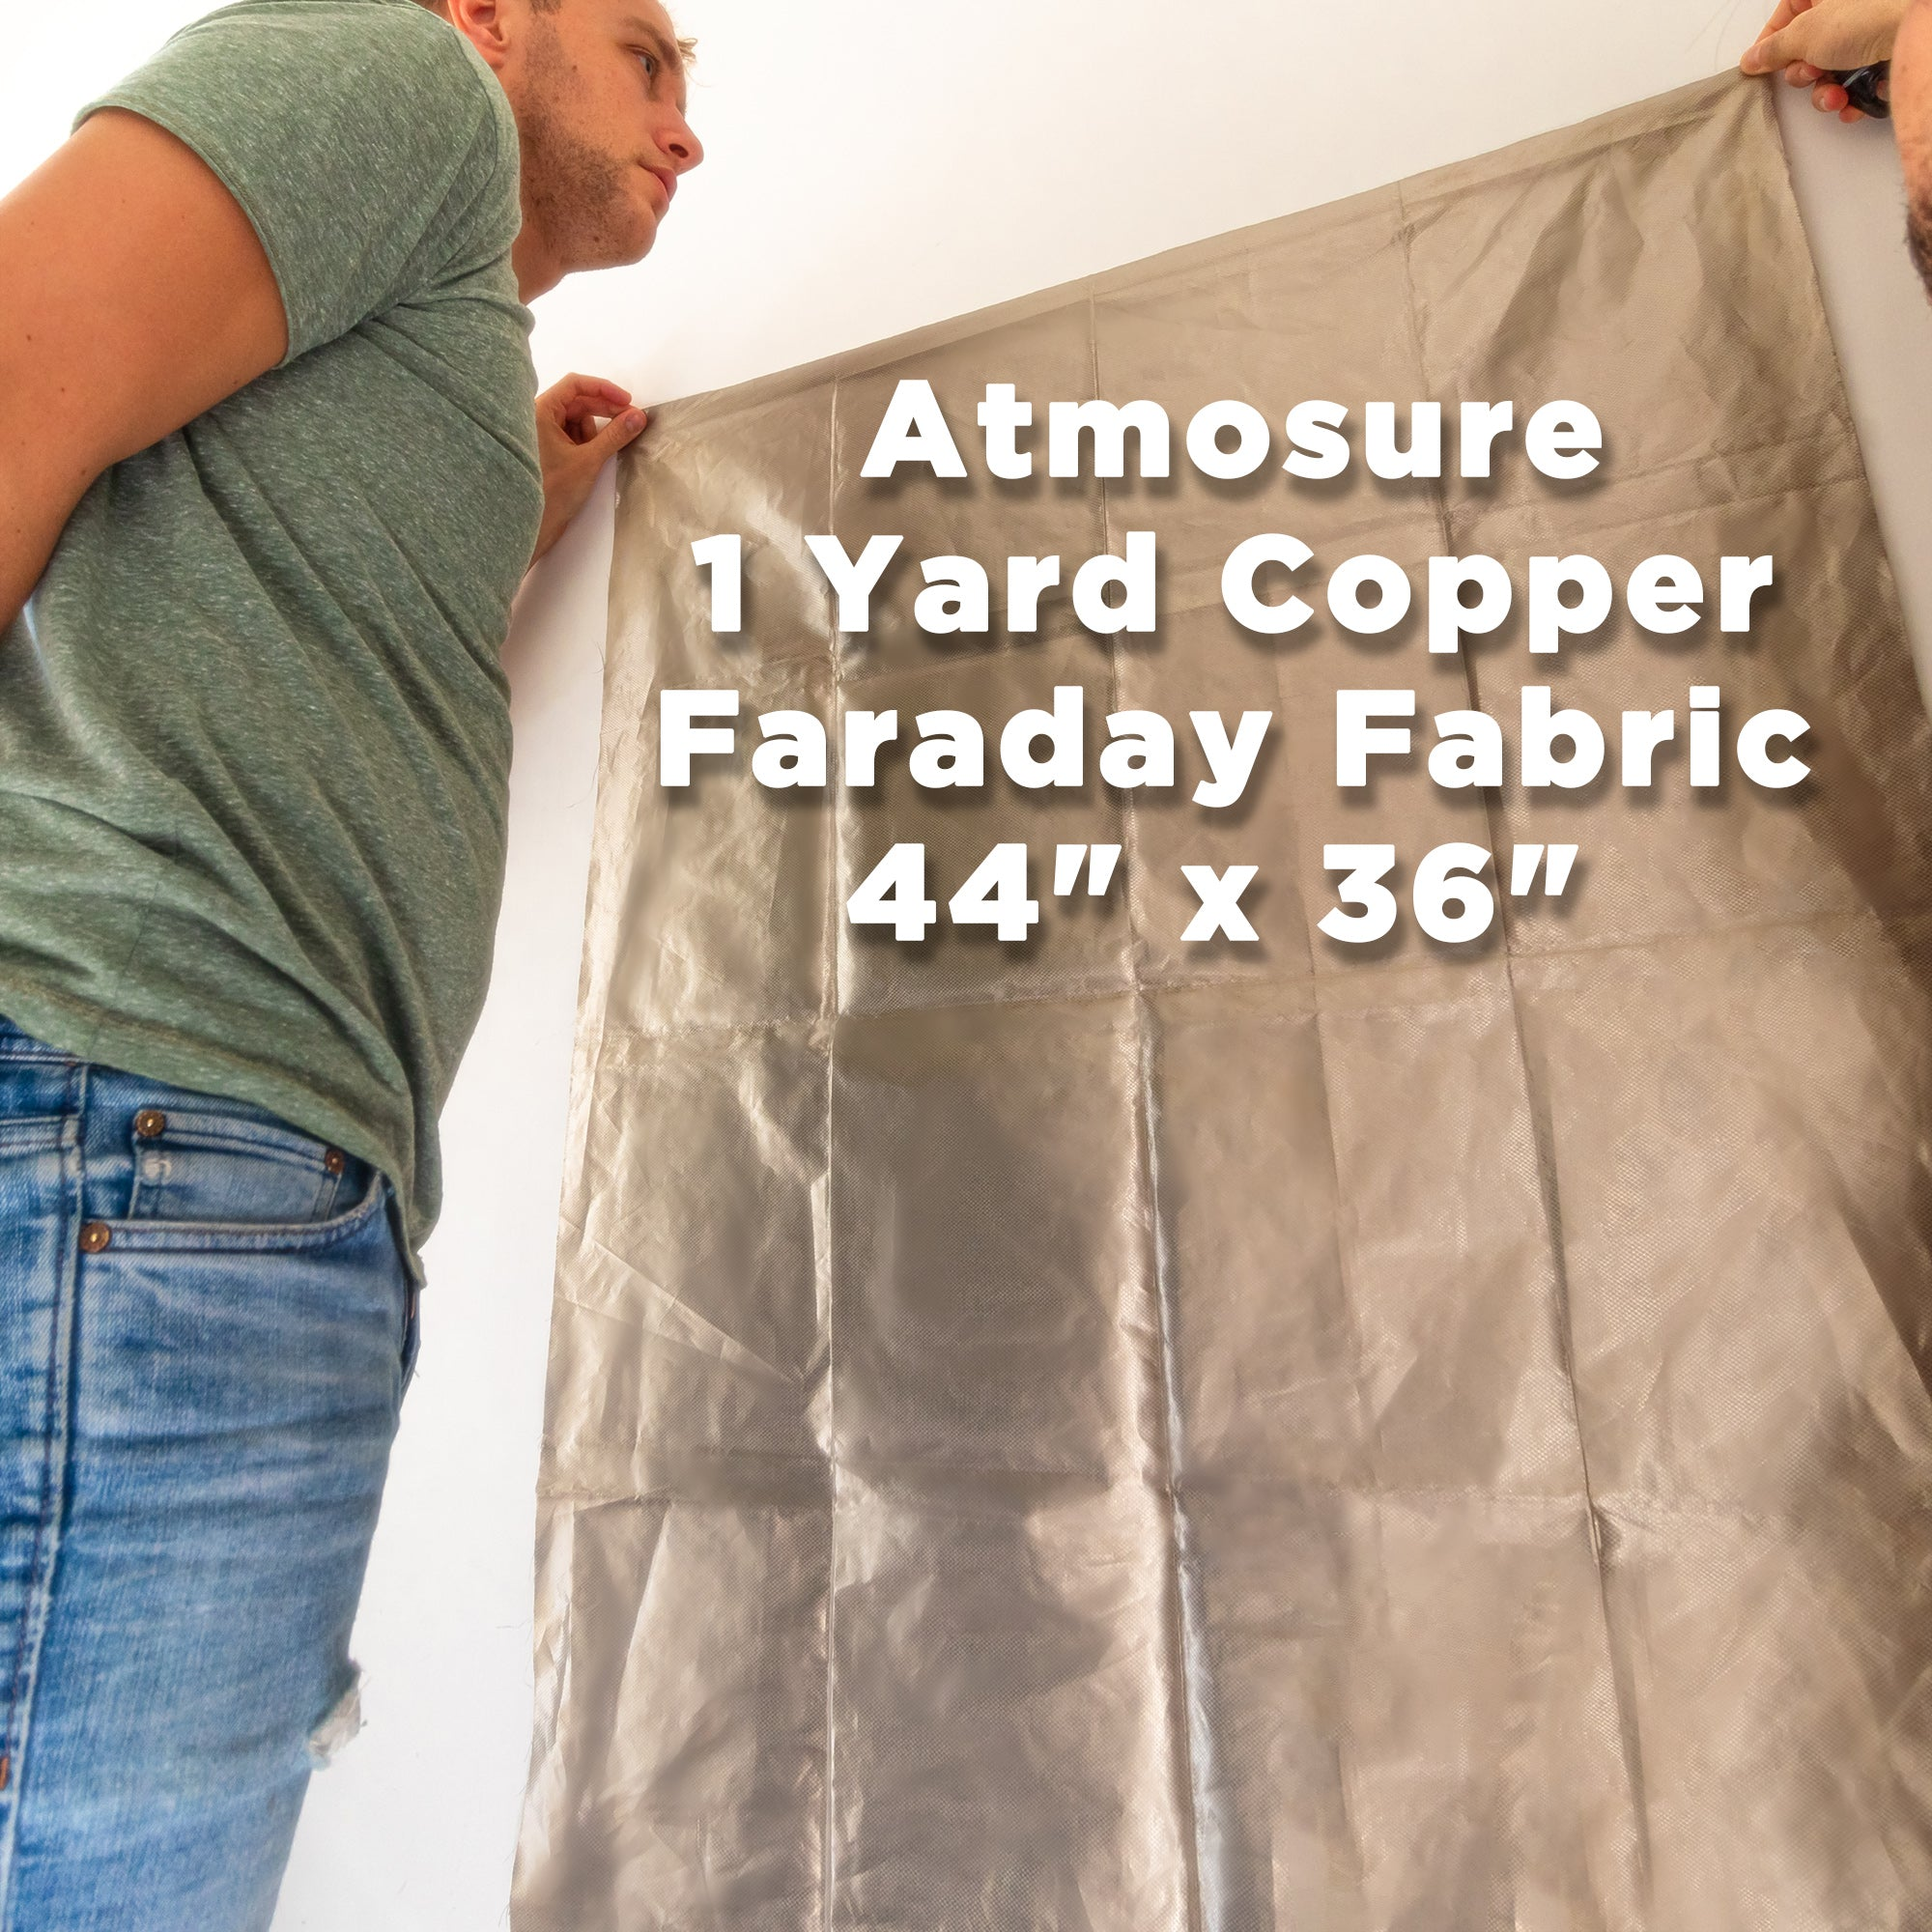 "1 Yard Copper Faraday Fabric (44"" x 36"") For EMF Enclosure & Protection"